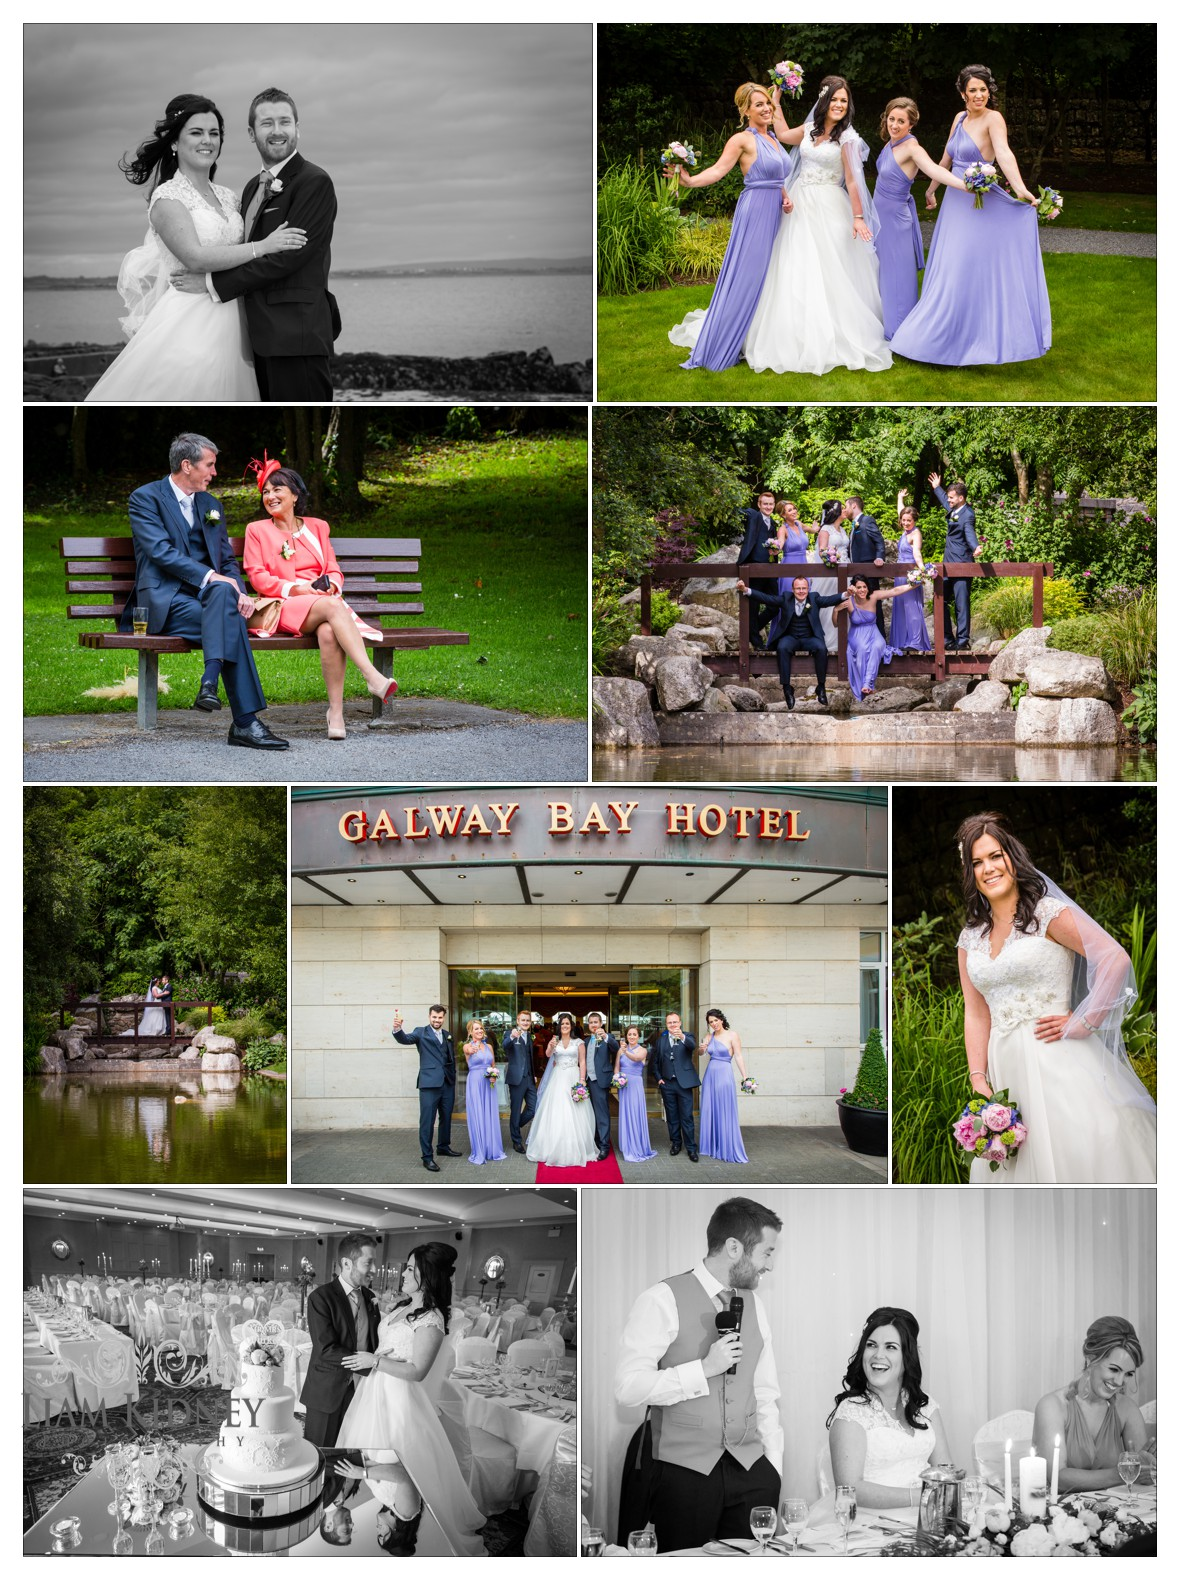 Elaine and John in the Galway Bay Hotel Wedding for their wedding reception